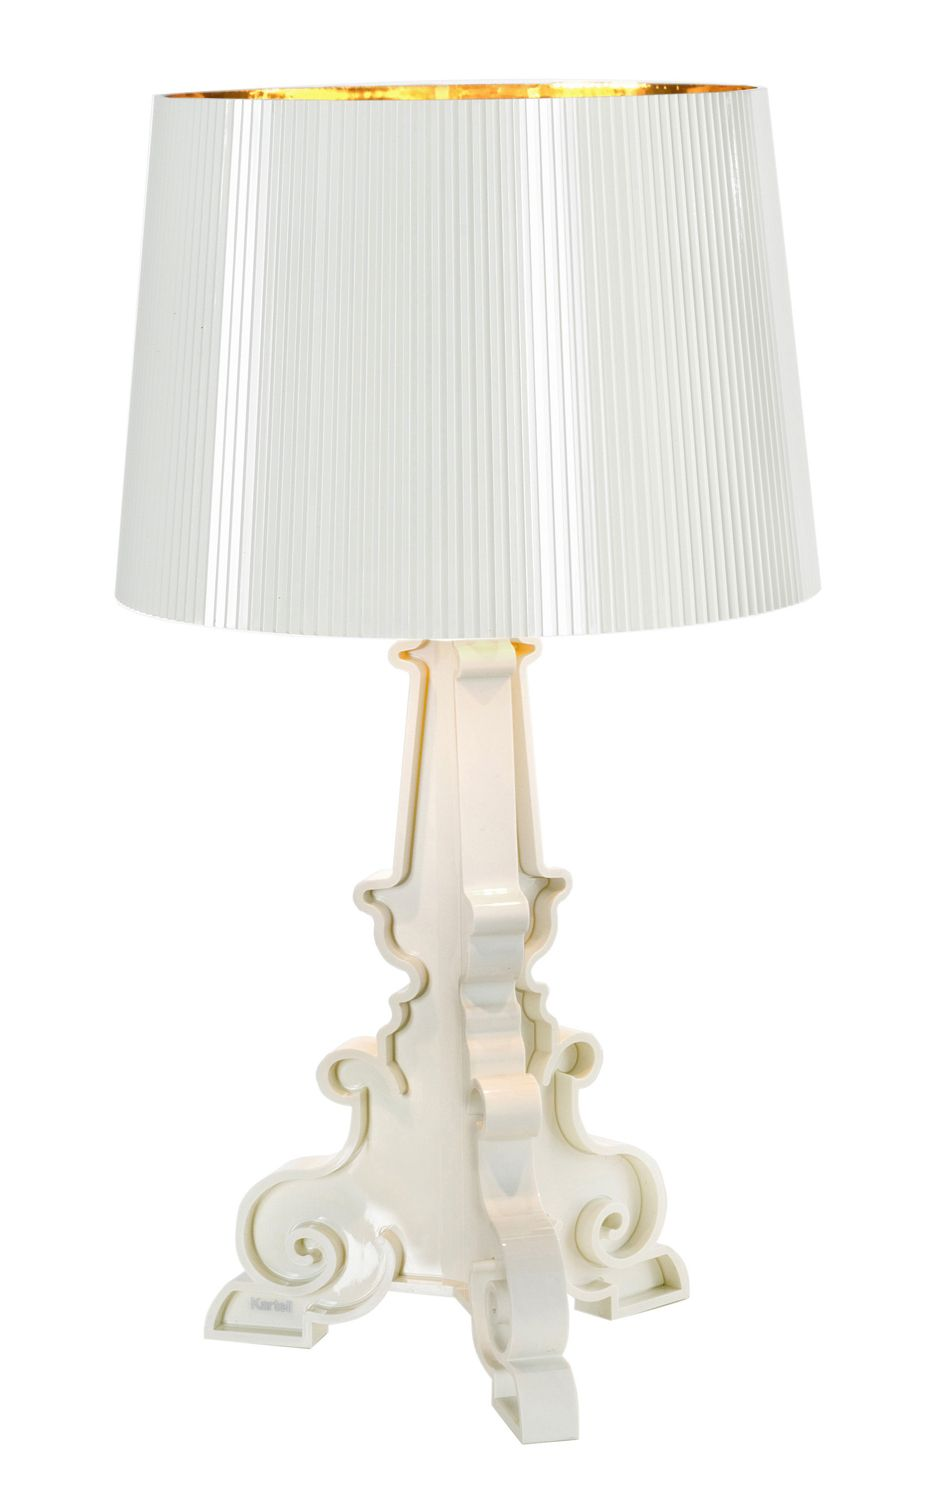 Heal's | Kartell Bourgie Lamp White by Ferruccio Laviani - Table Lamps - Lamps - Lighting